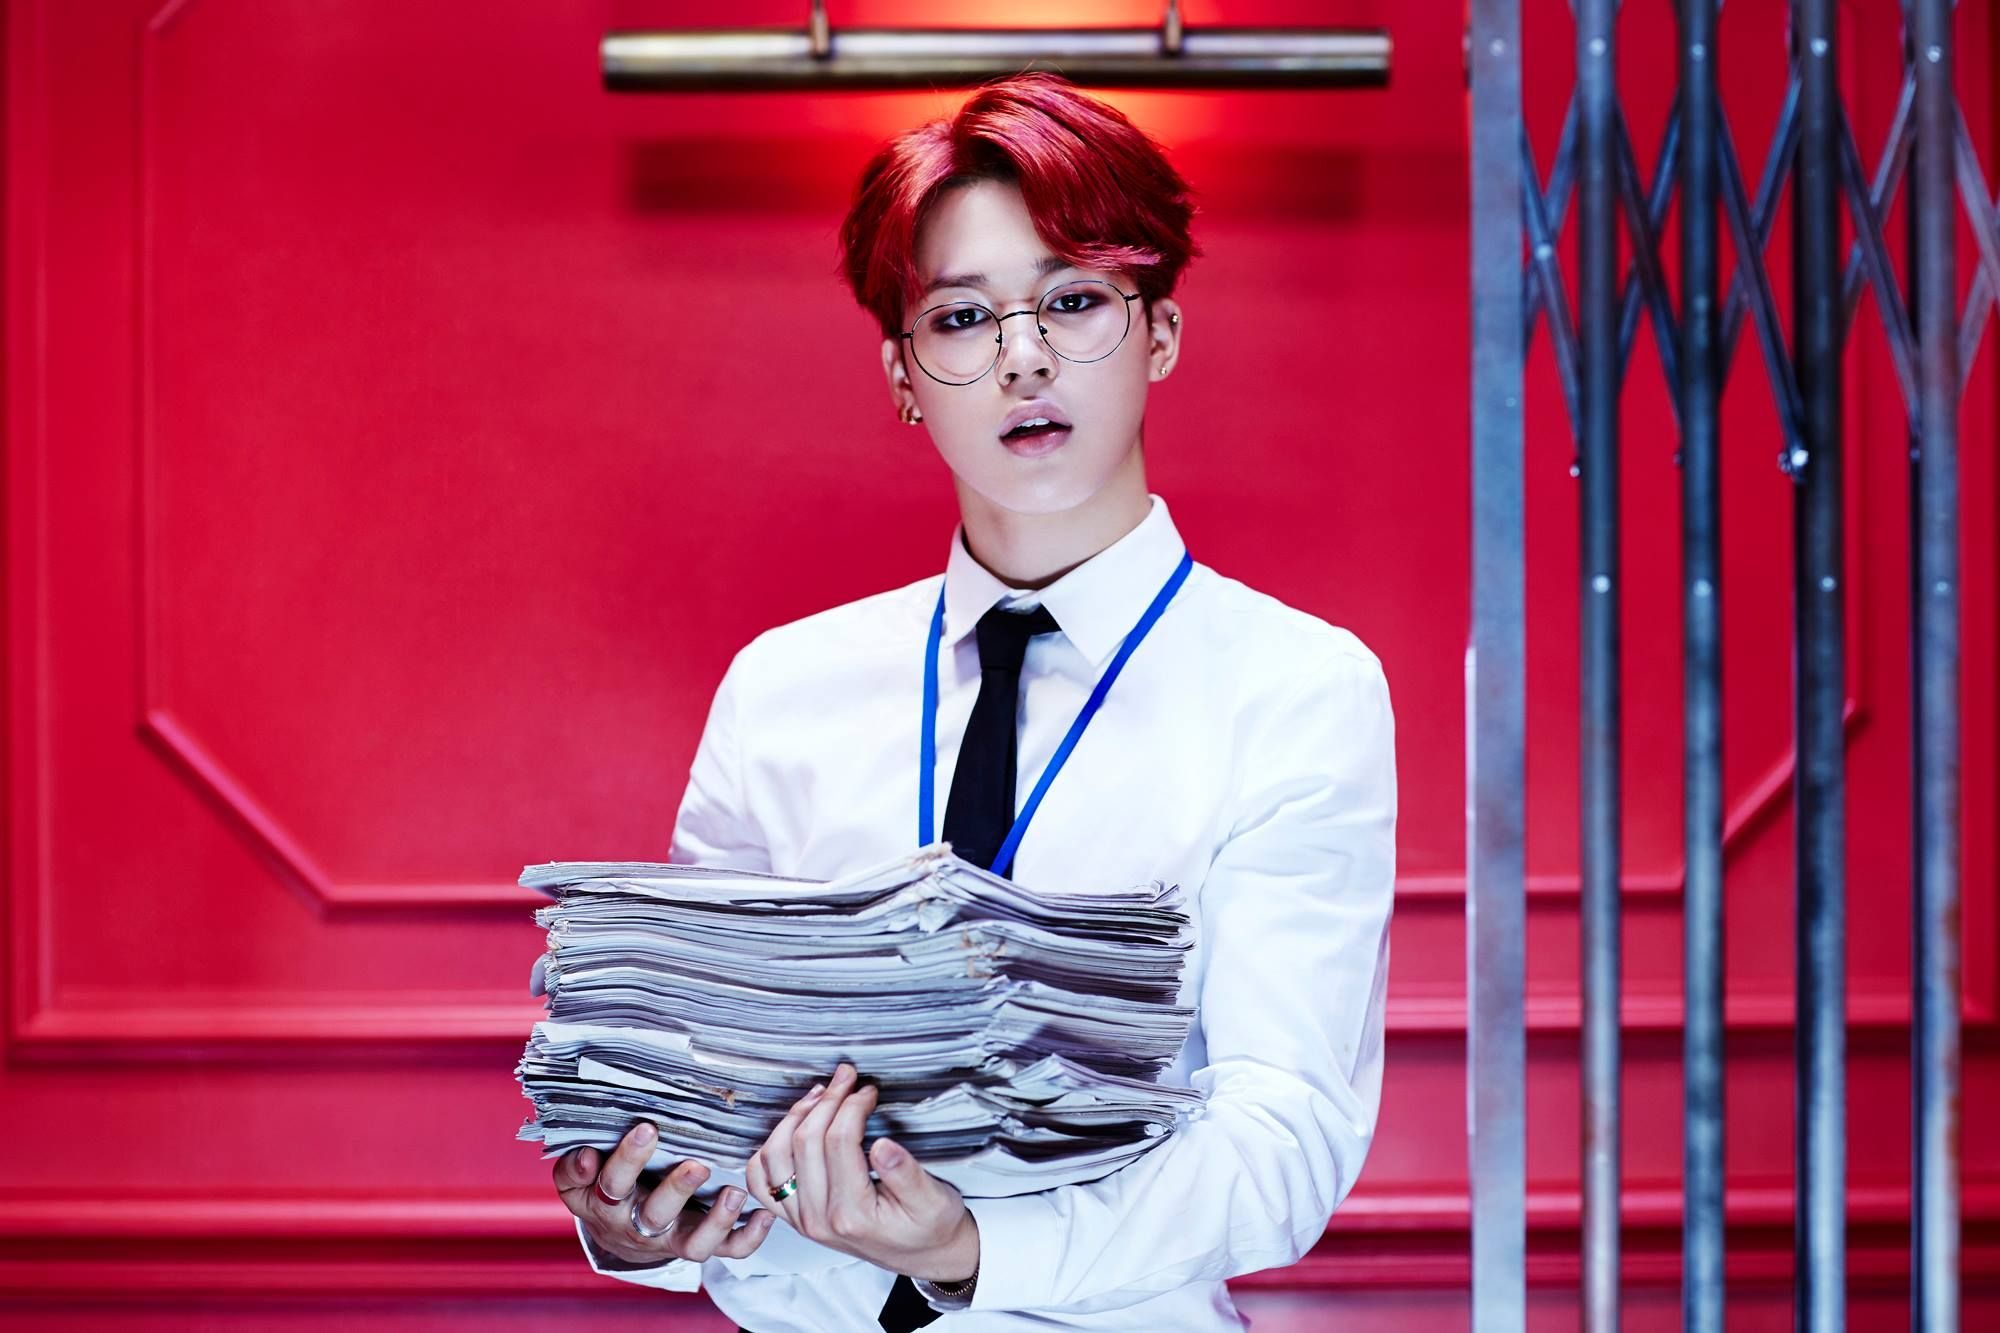 [Picture/FB] BTS 3rd Mini Album '쩔어' Concept Photo – JIMIN [150621] | btsdiary